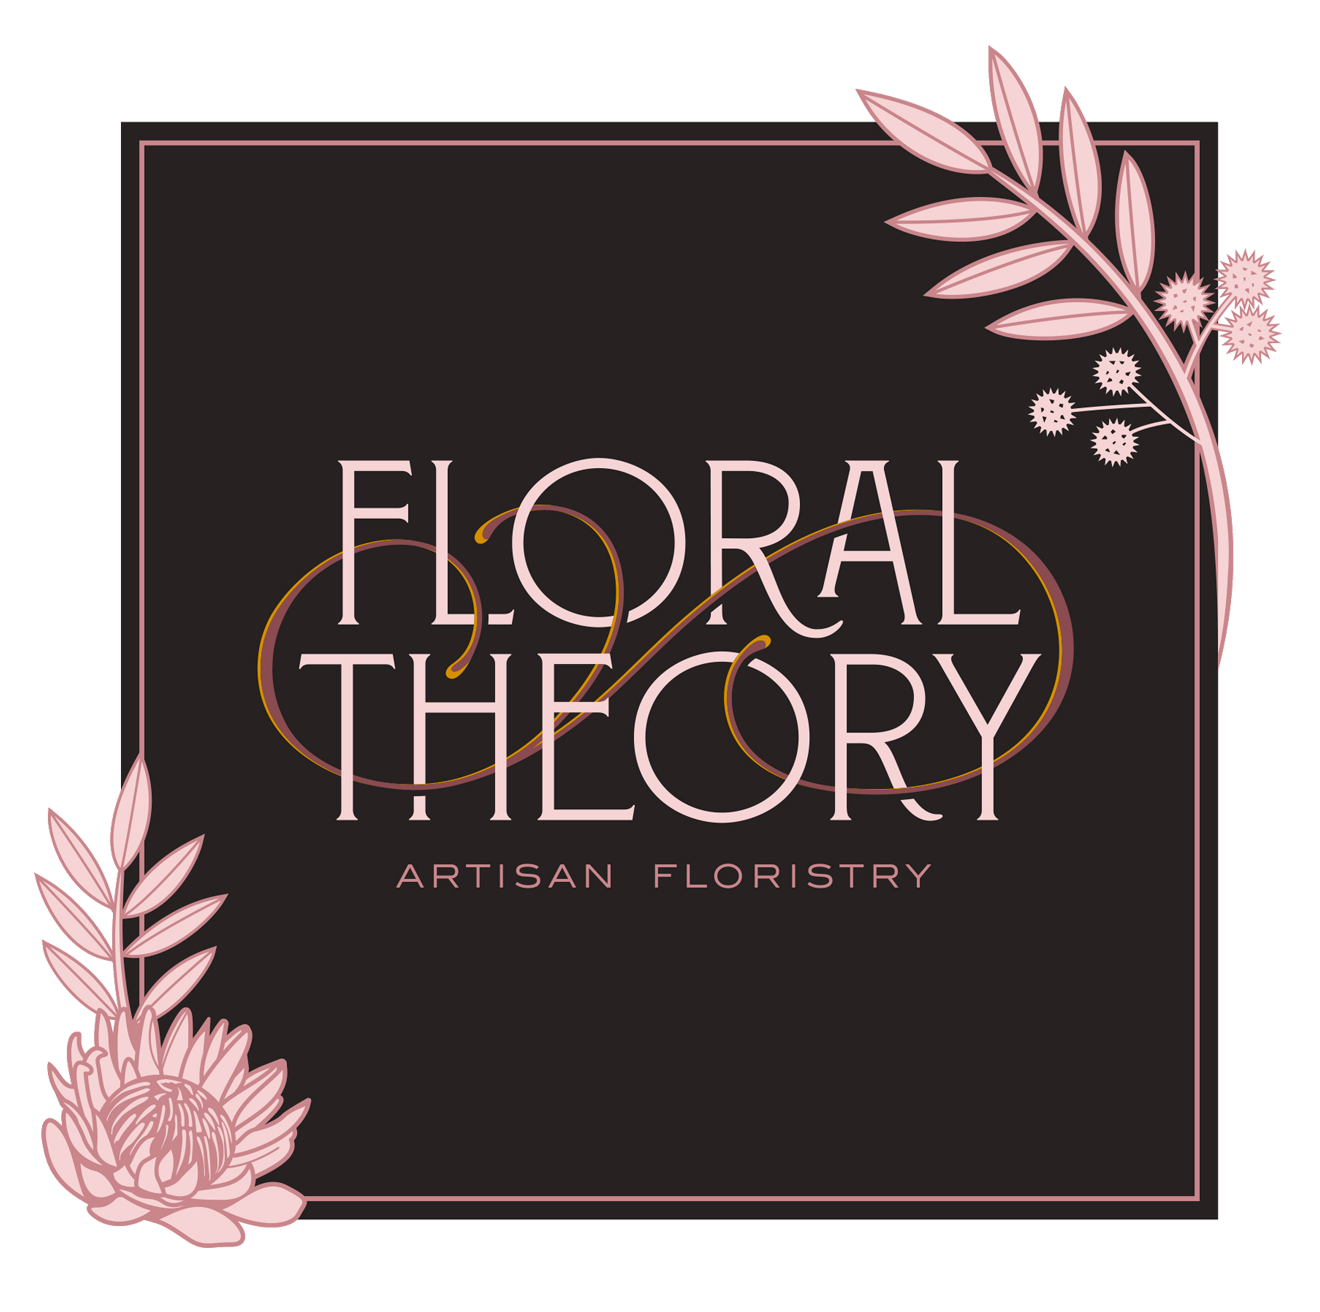 Floral-Theory_square-logo_dark.png